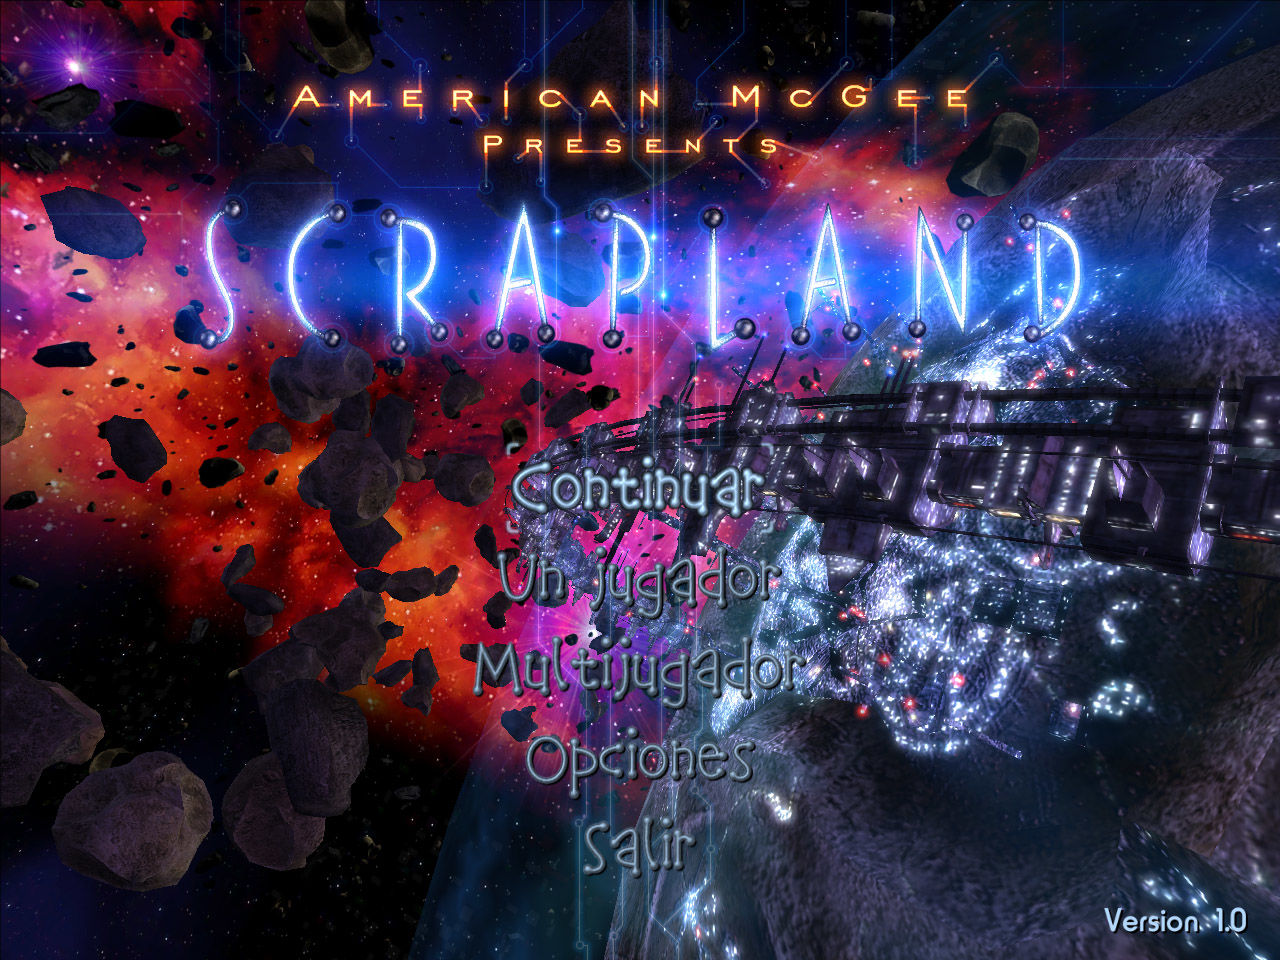 American McGee presents SCRAPLAND Windows Main menu